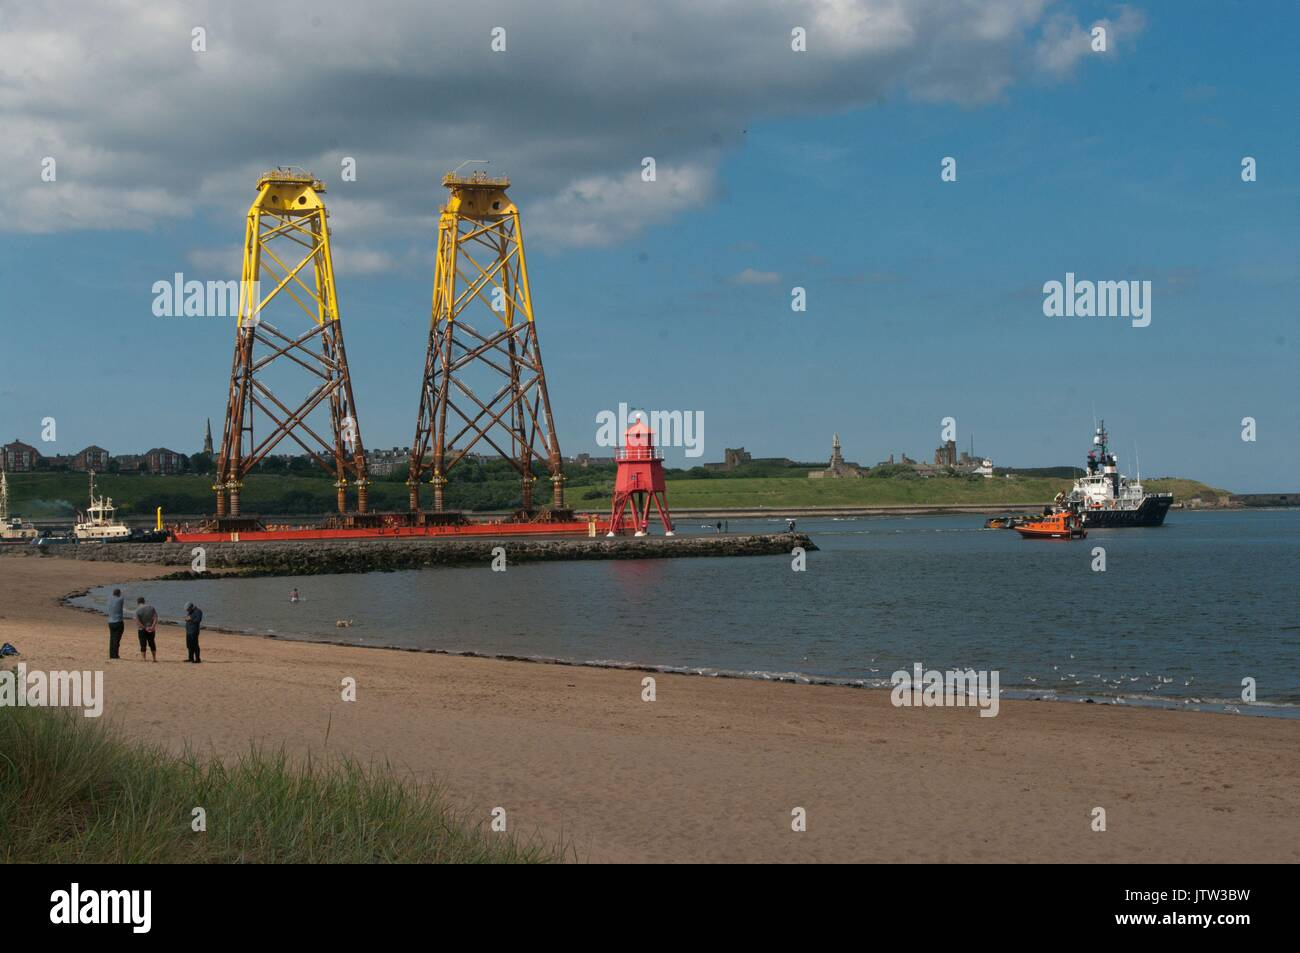 River Tyne, South Shields, UK, 10th August 2017. Wind turbine foundations being towed past The Groyne, South Shields Stock Photo